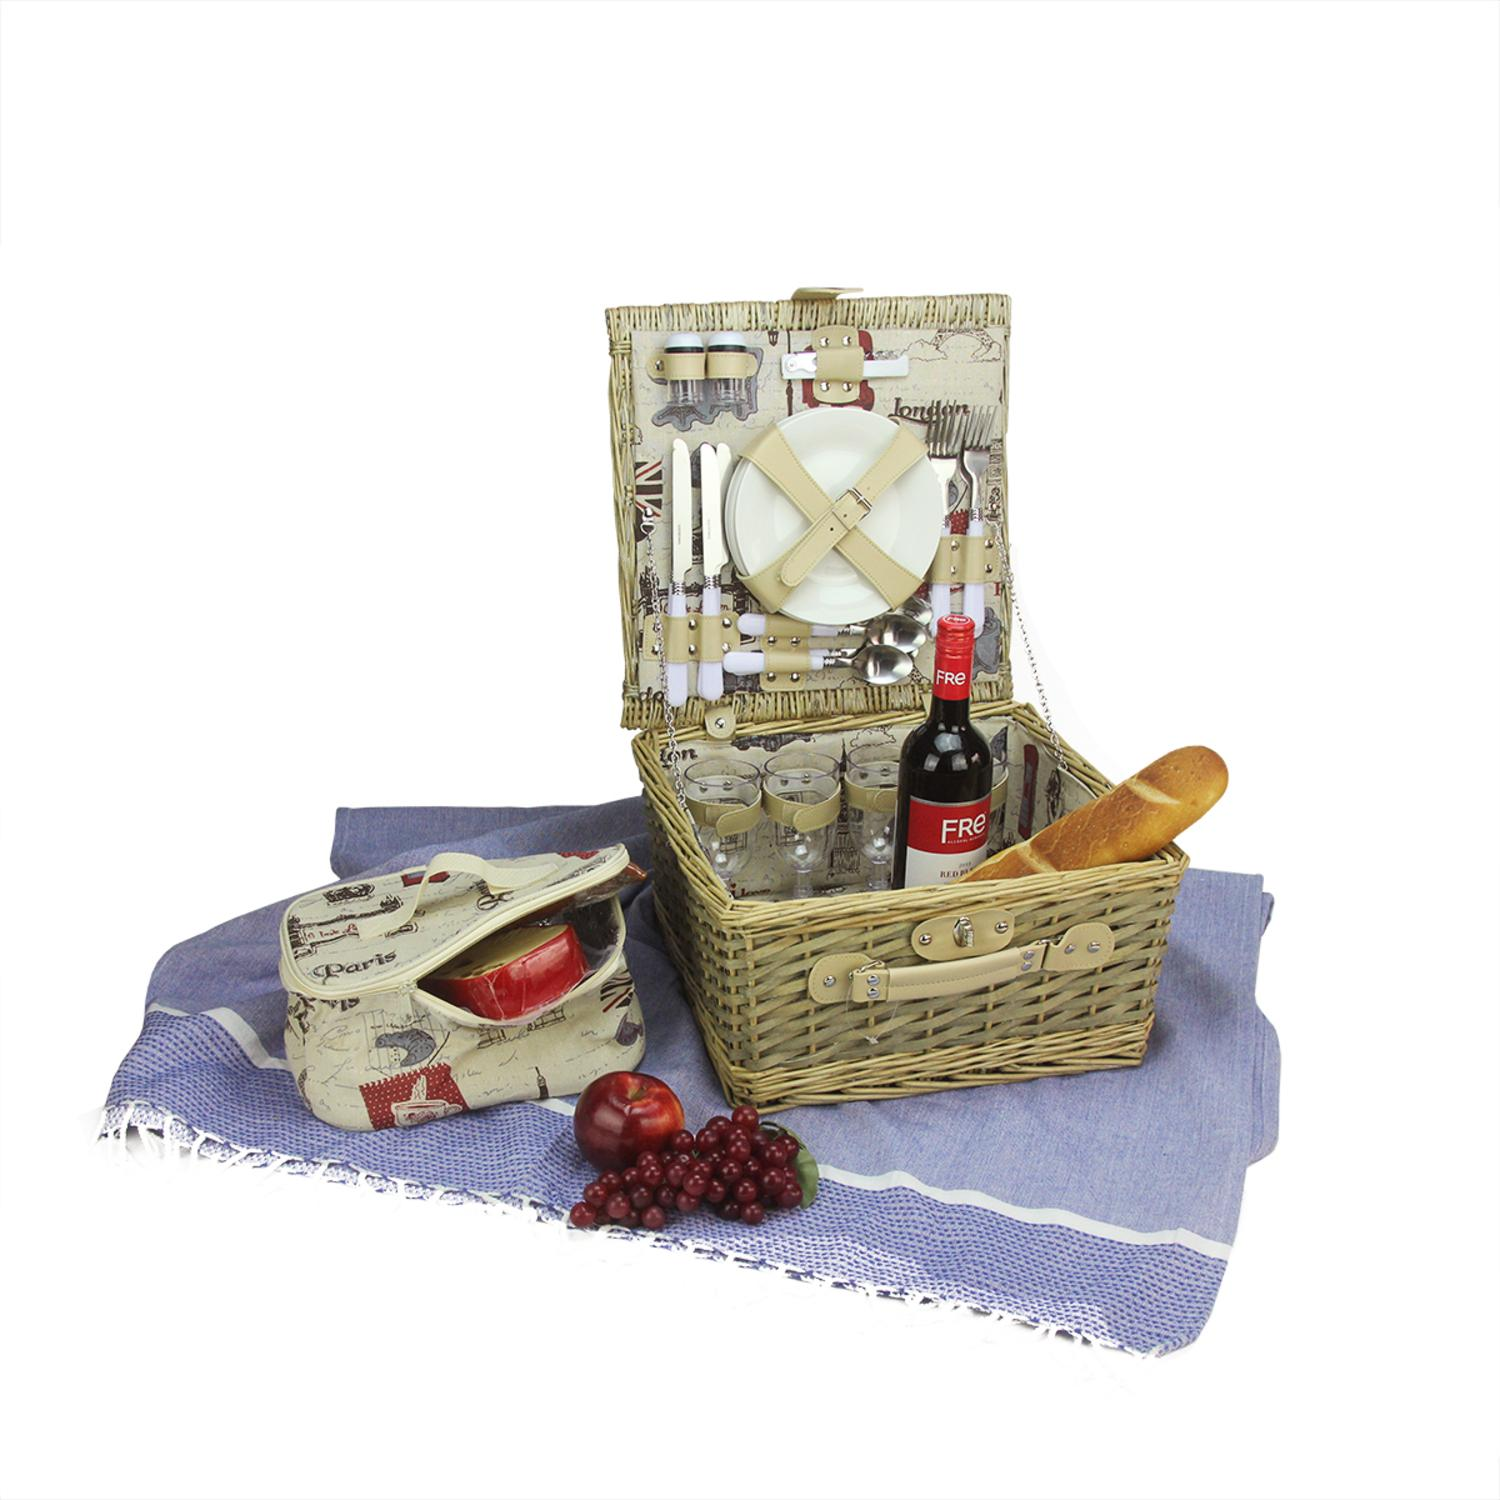 Northlight 4-Person Hand Woven Warm Gray And Natural I Love Paris Willow Picnic Basket Set With Accessories